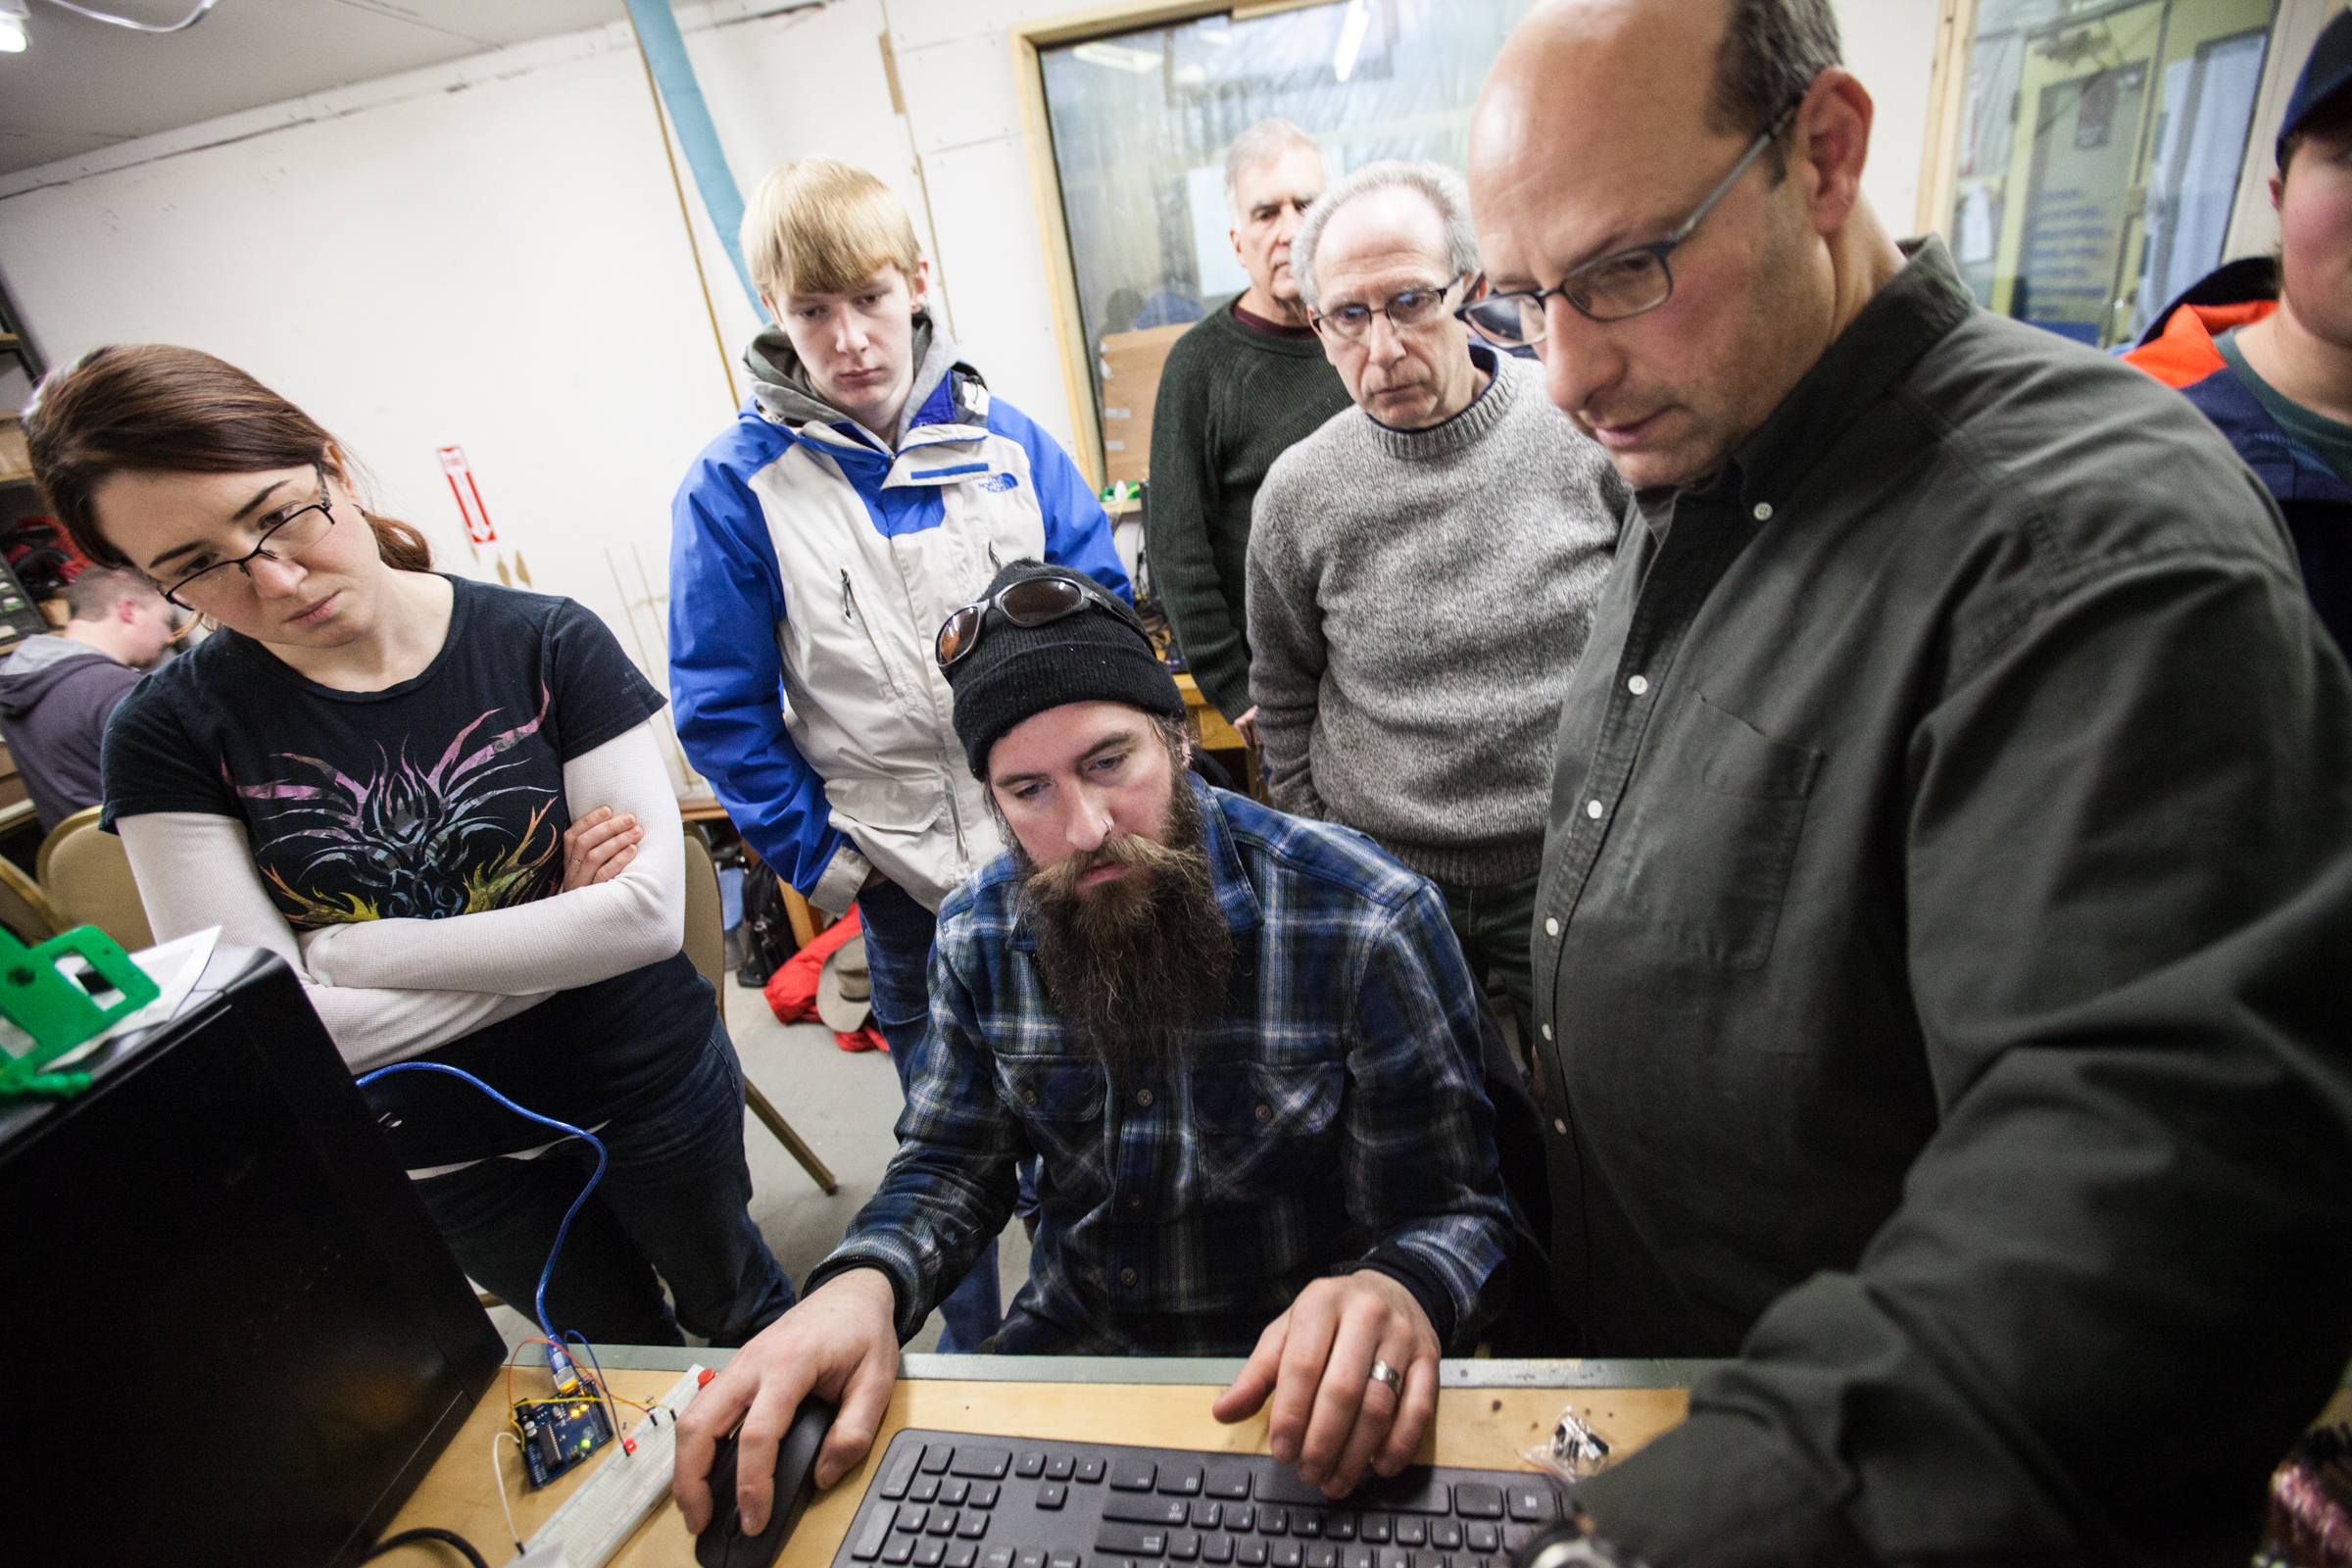 Mat O'Brien learning all about Arduinos at the Open Bench Project in the Electronics Lab, 2016.